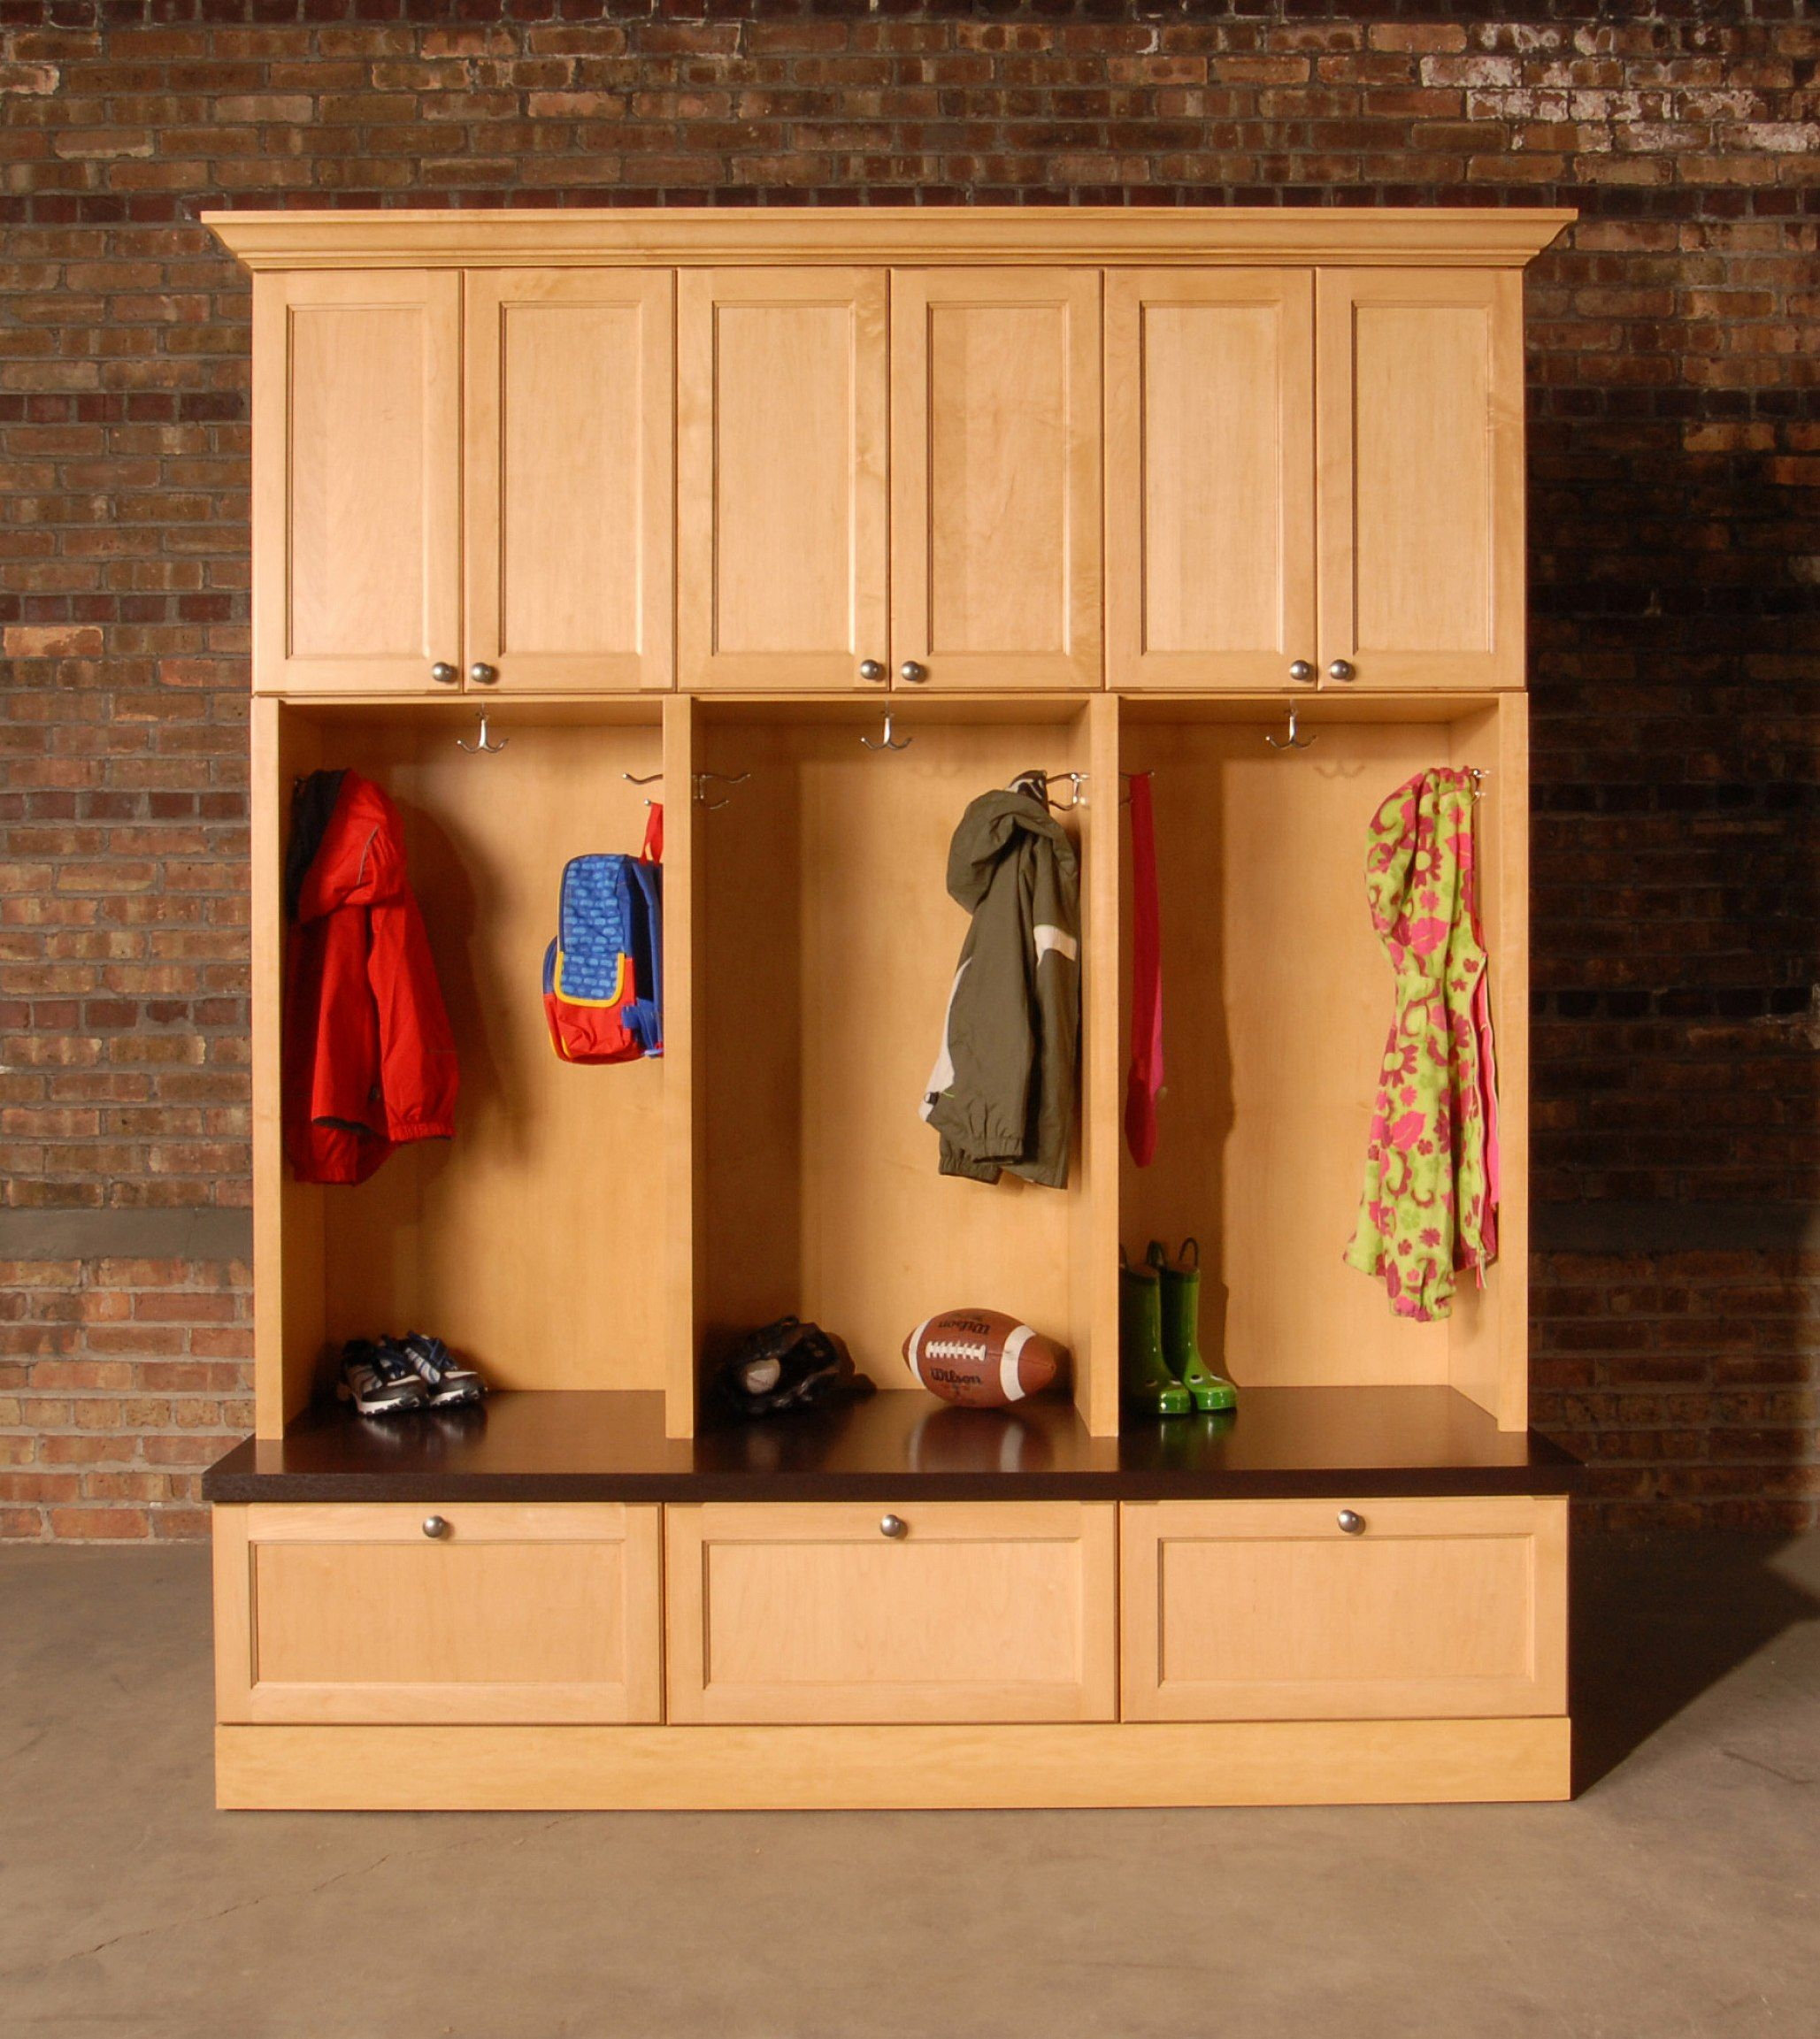 Original Wooden Lockers For Home Mudroom. Mudroom BenchesMudroom  CubbiesMudroom Storage ...